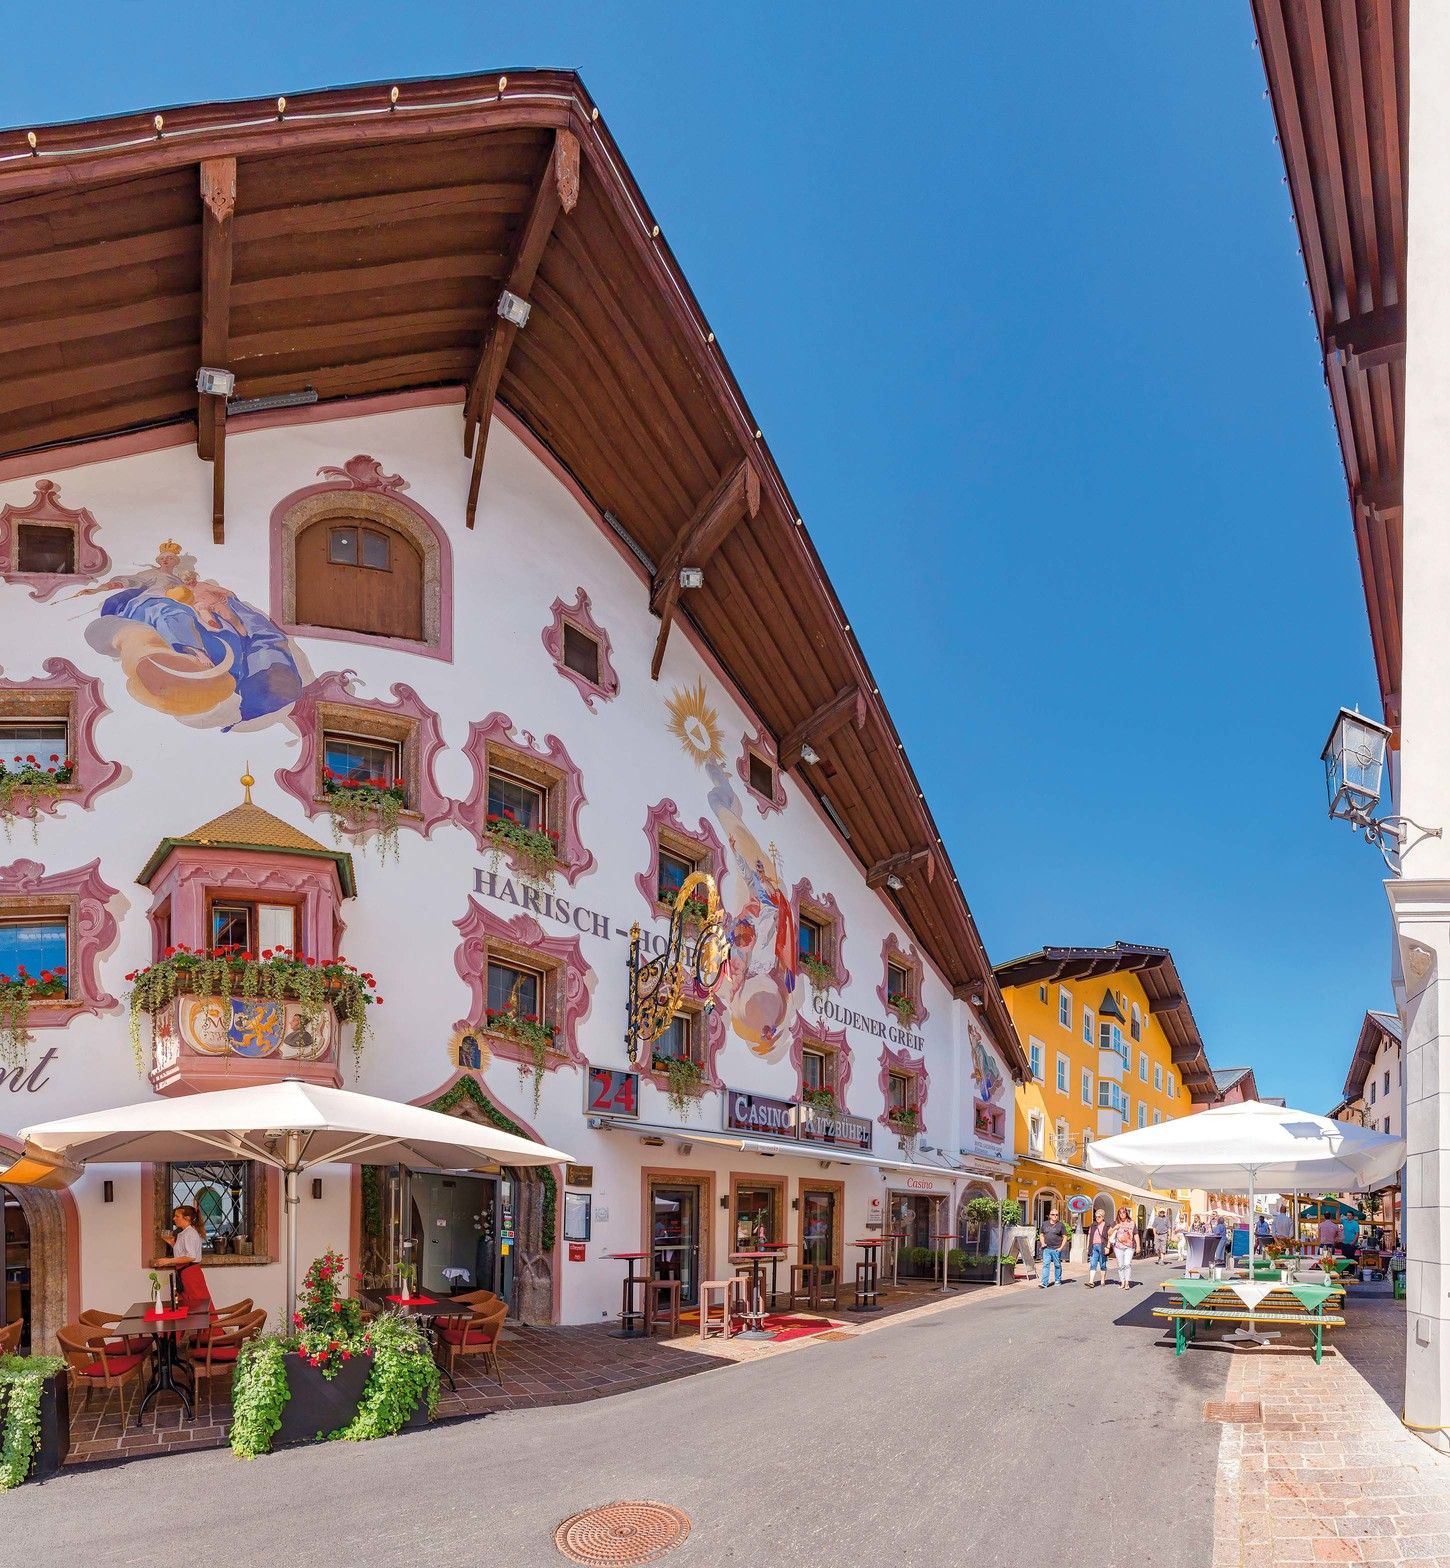 Kitzbuhel, Austria, Decorated hotel, guesthouse at the Hinterstadt street. (Photo by: Prisma Bildagentur/Universal Images Group via Getty Images)